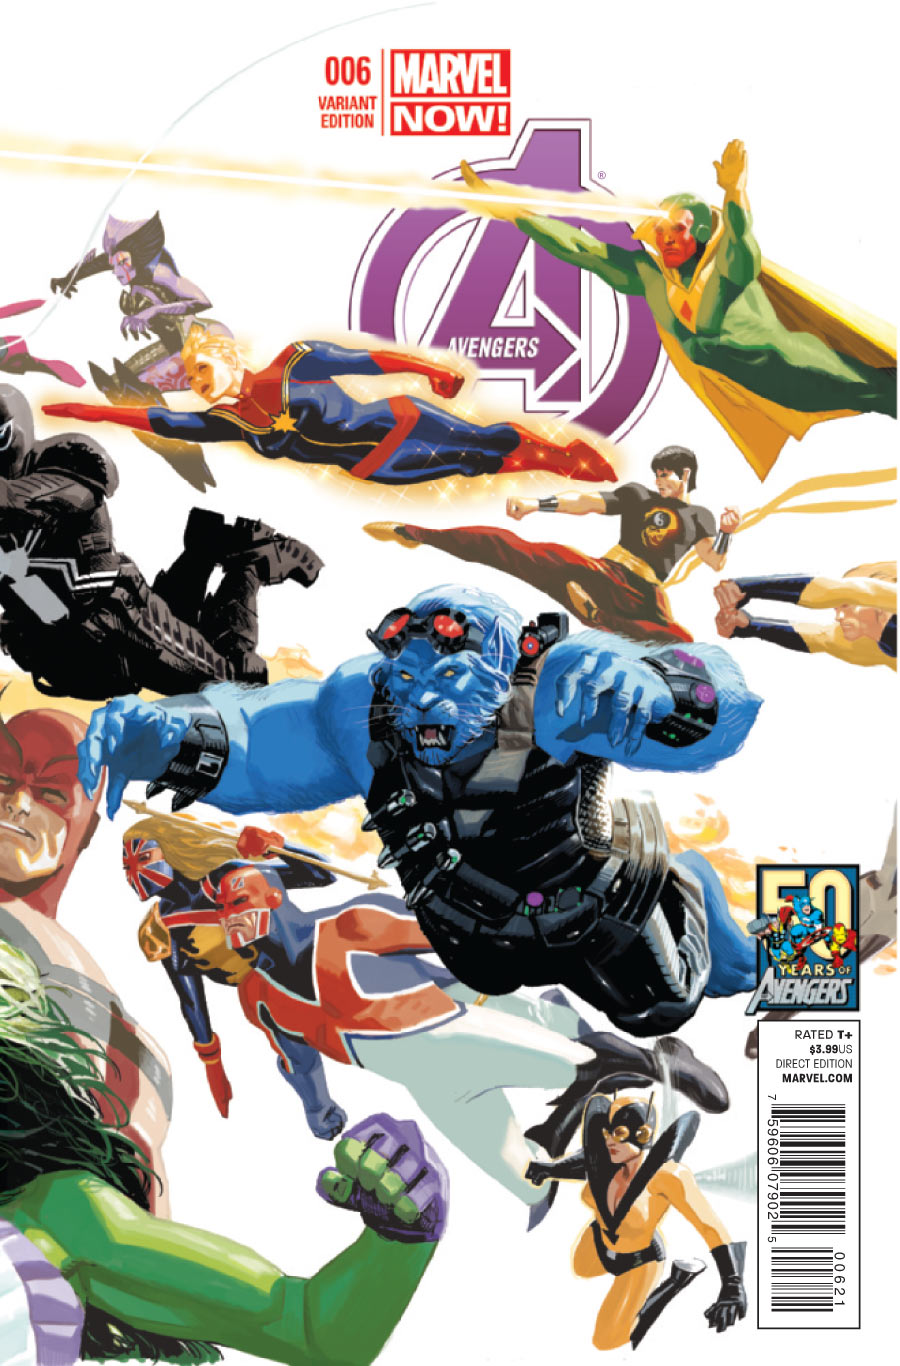 Avengers Vol 5 6 50 Years of Avengers Variant.jpg